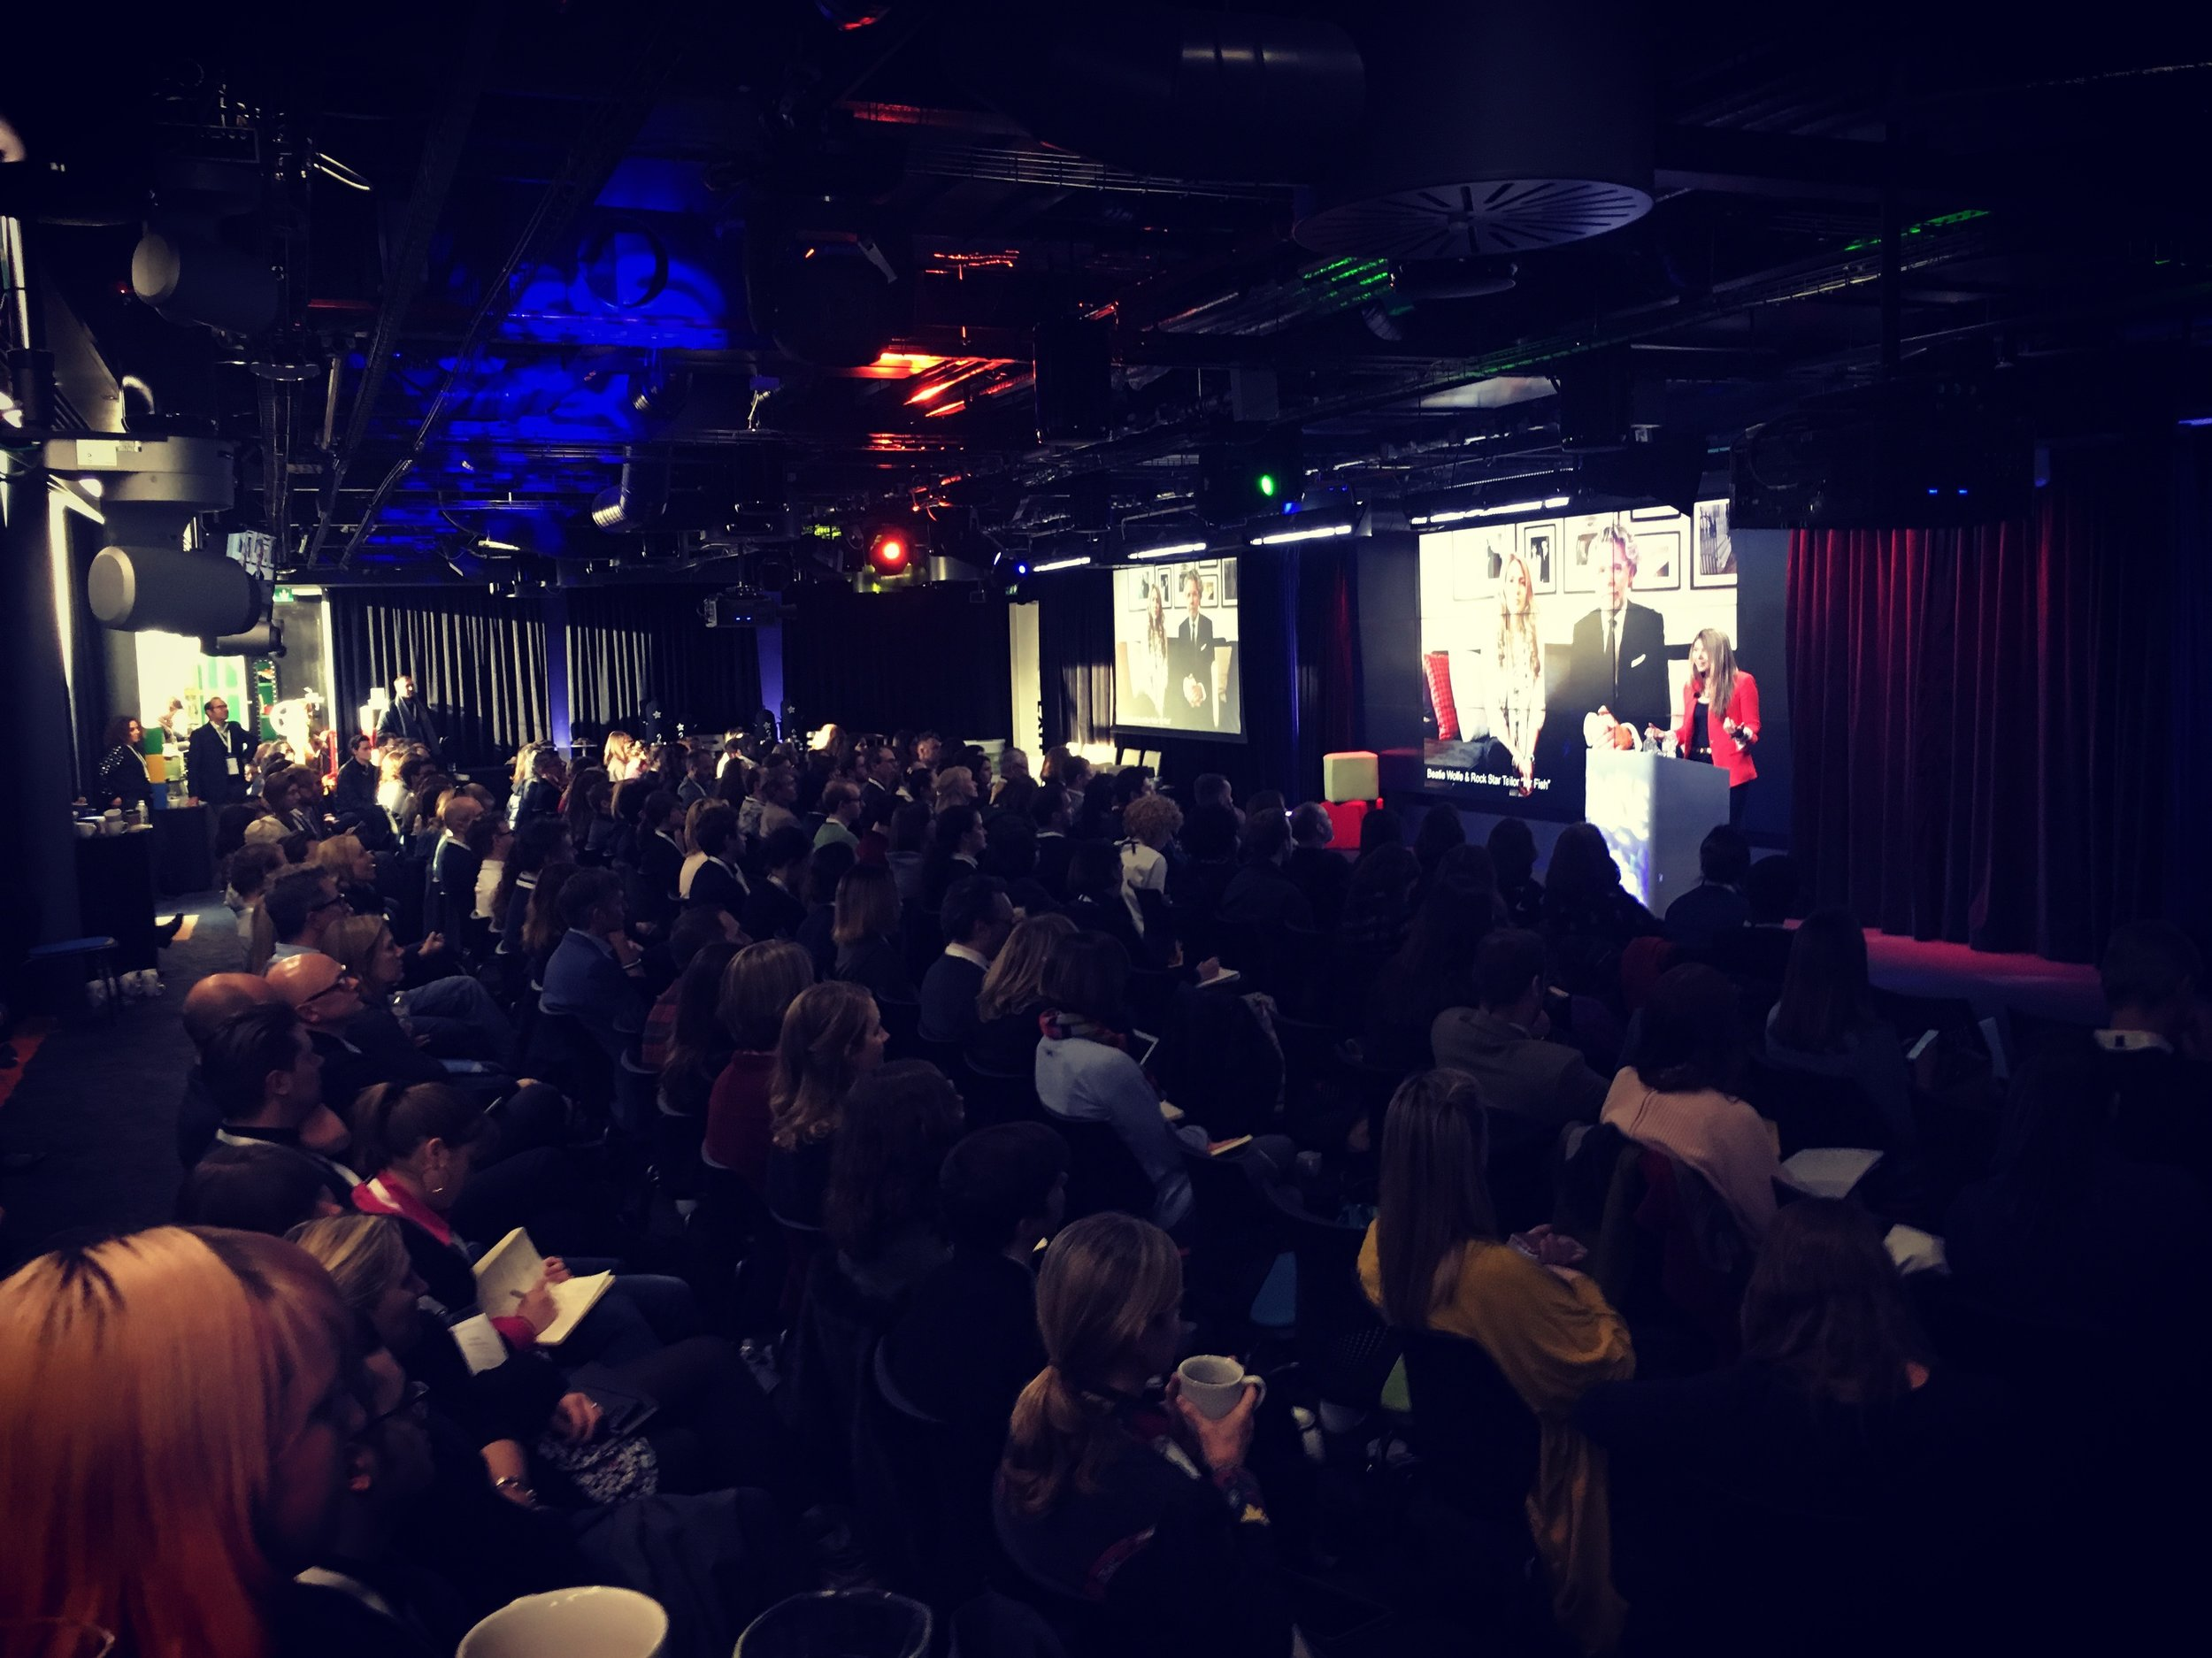 Beatie Wolfe speaks about 'The Art of Music' at Google HQ